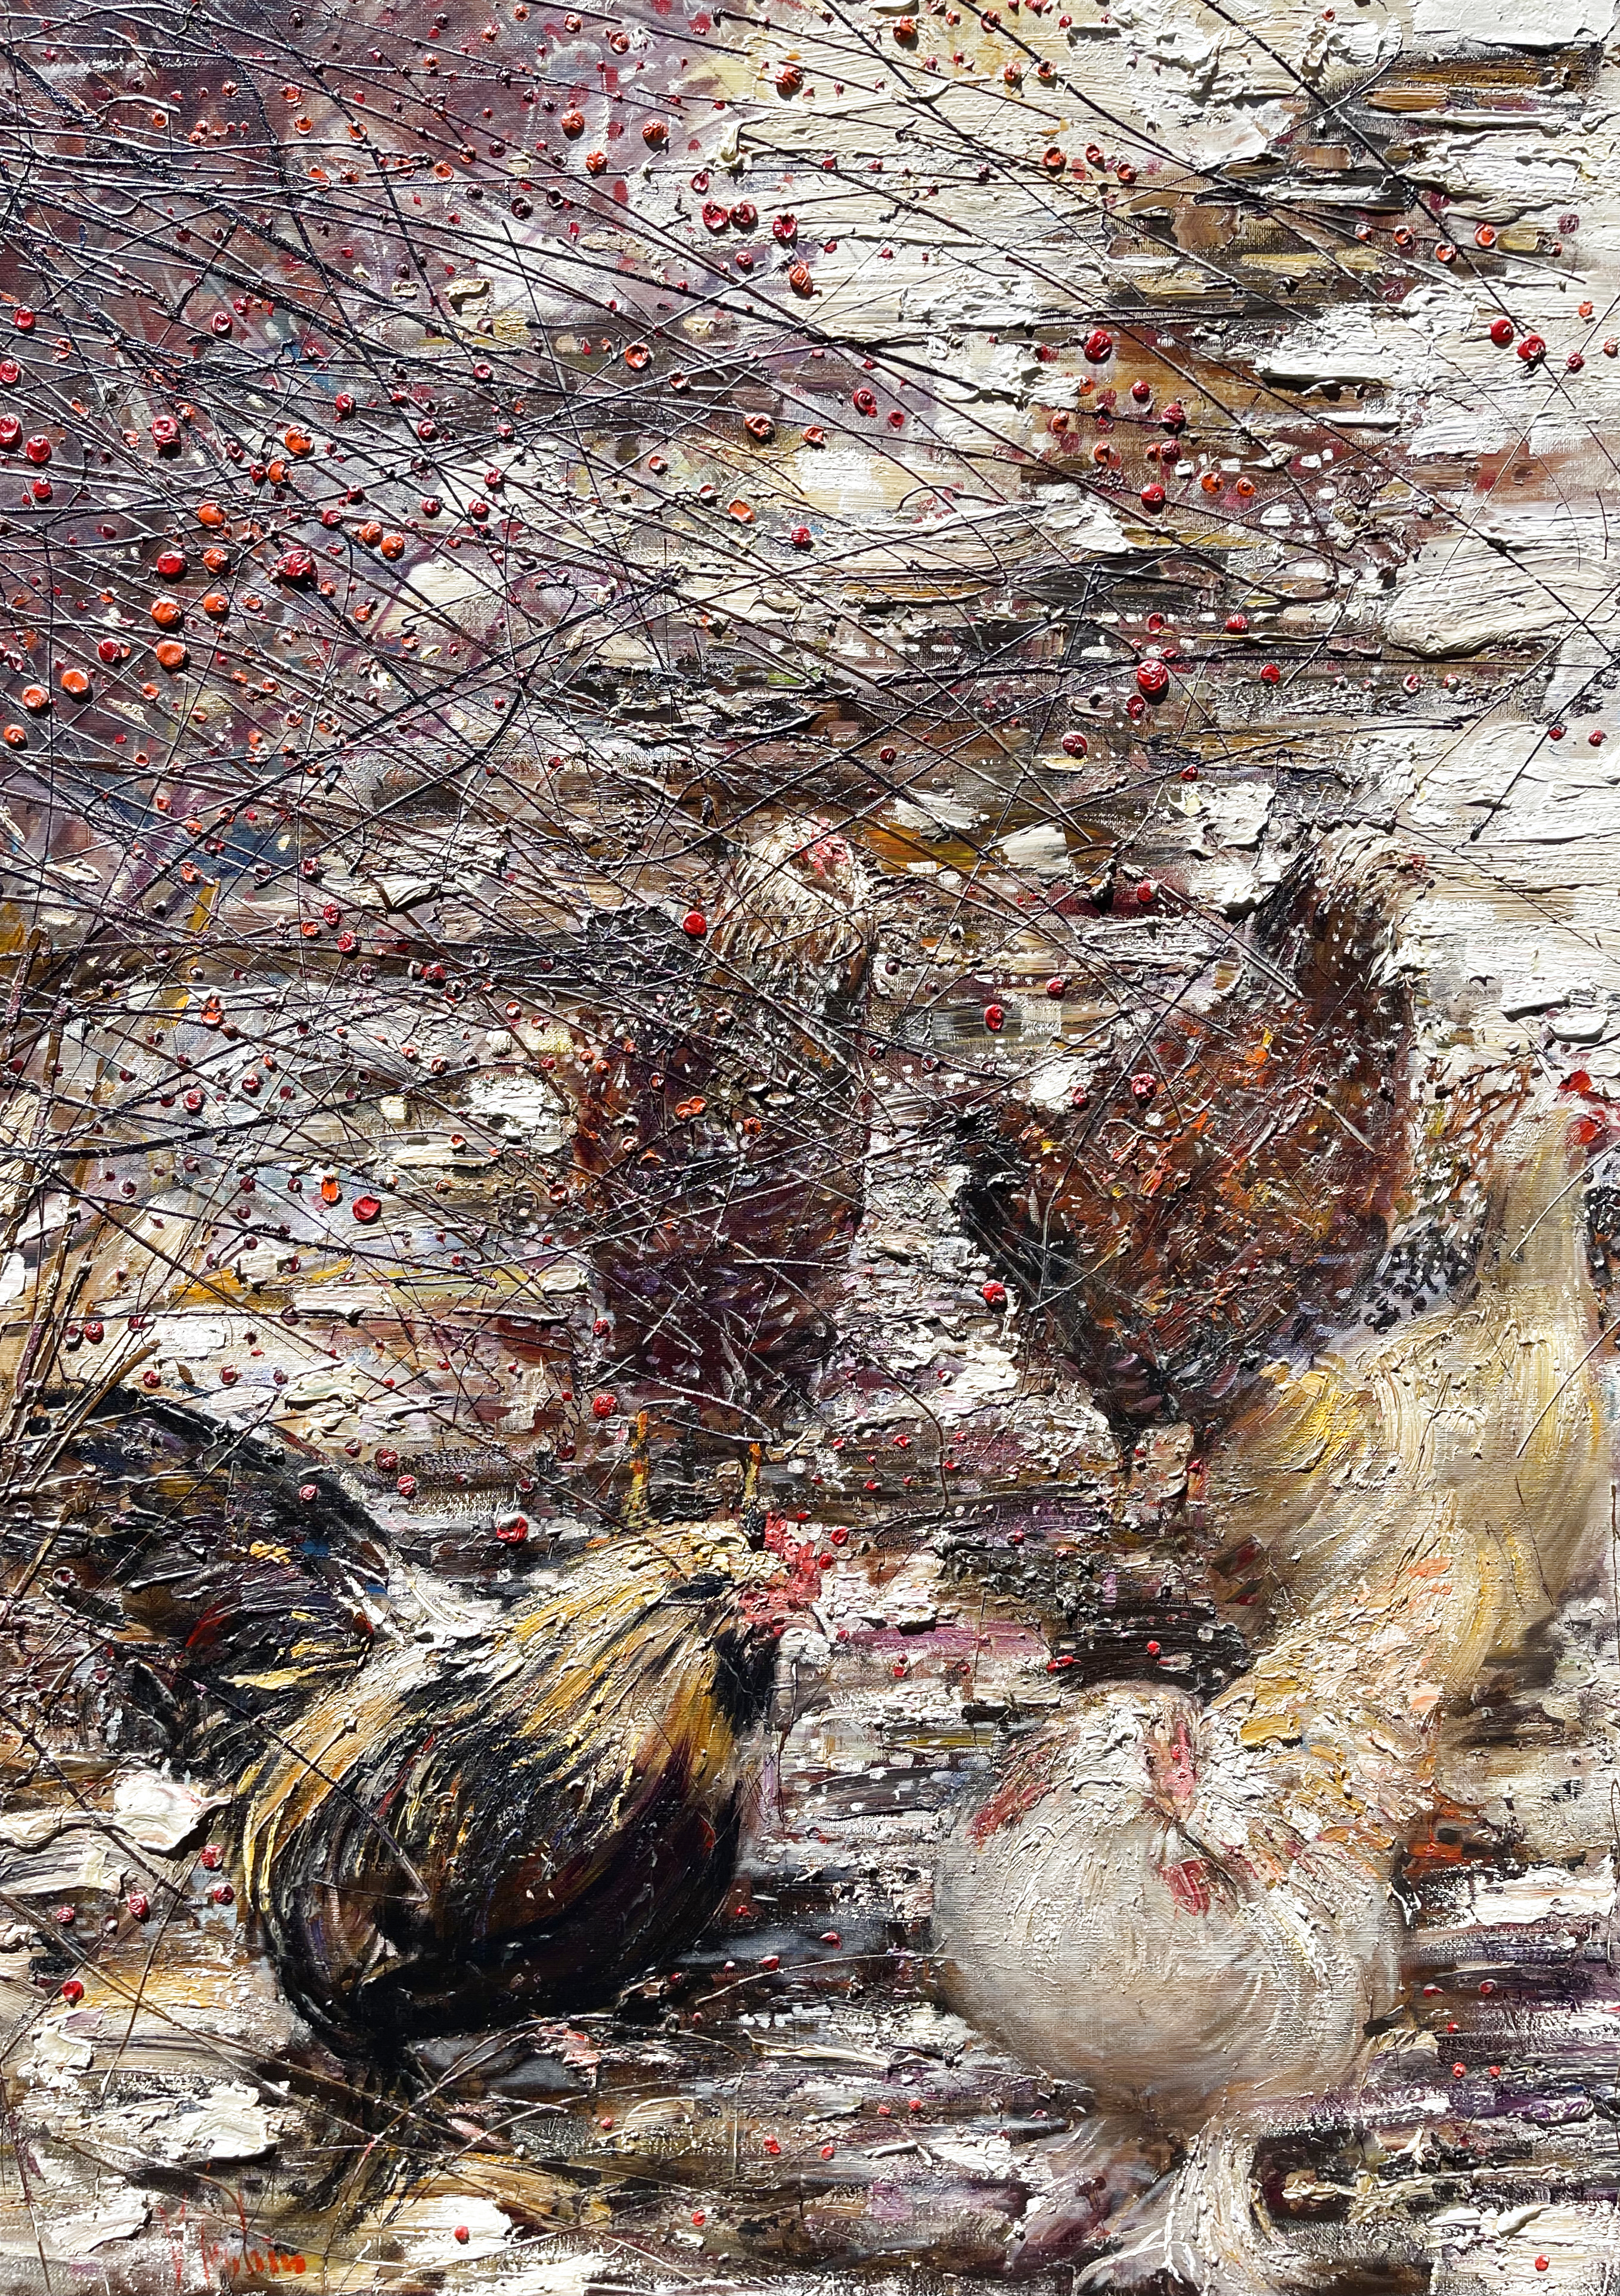 Chickens And Rowan 2011 70x50